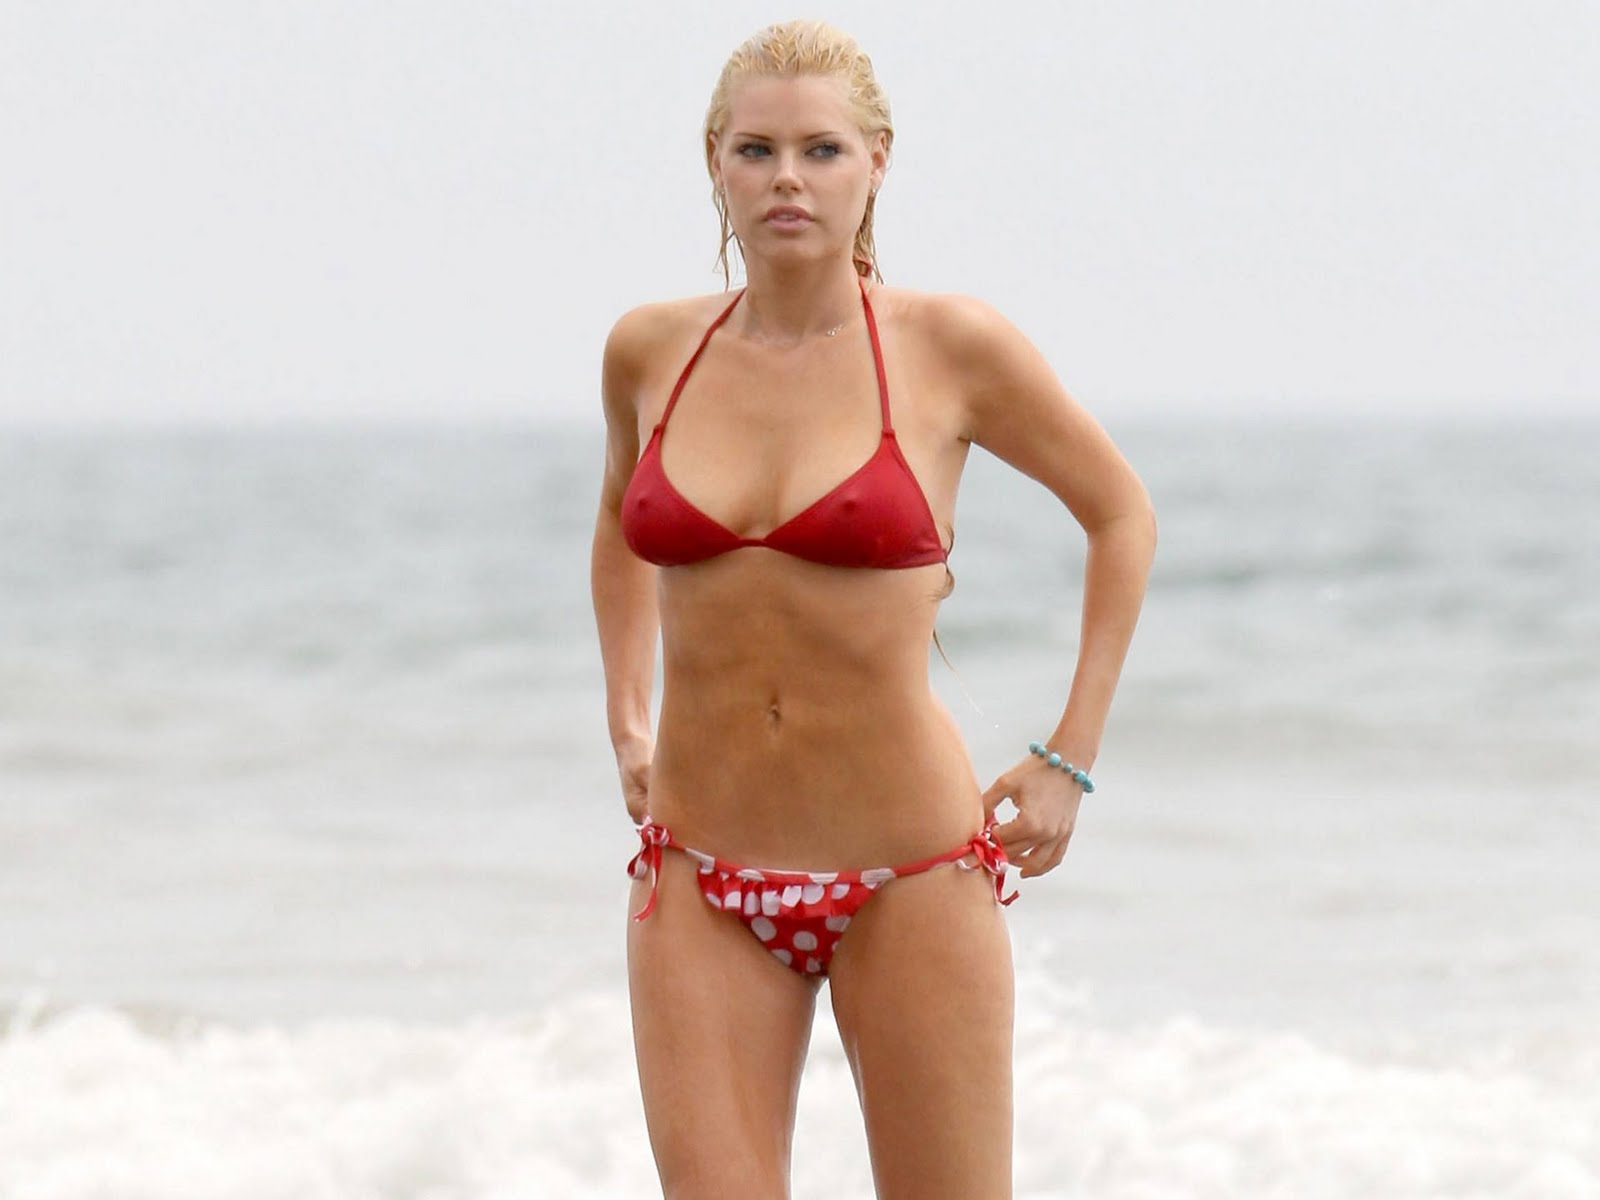 sophie monk wallpaper, sophie monk Picture , sophie monk Photo